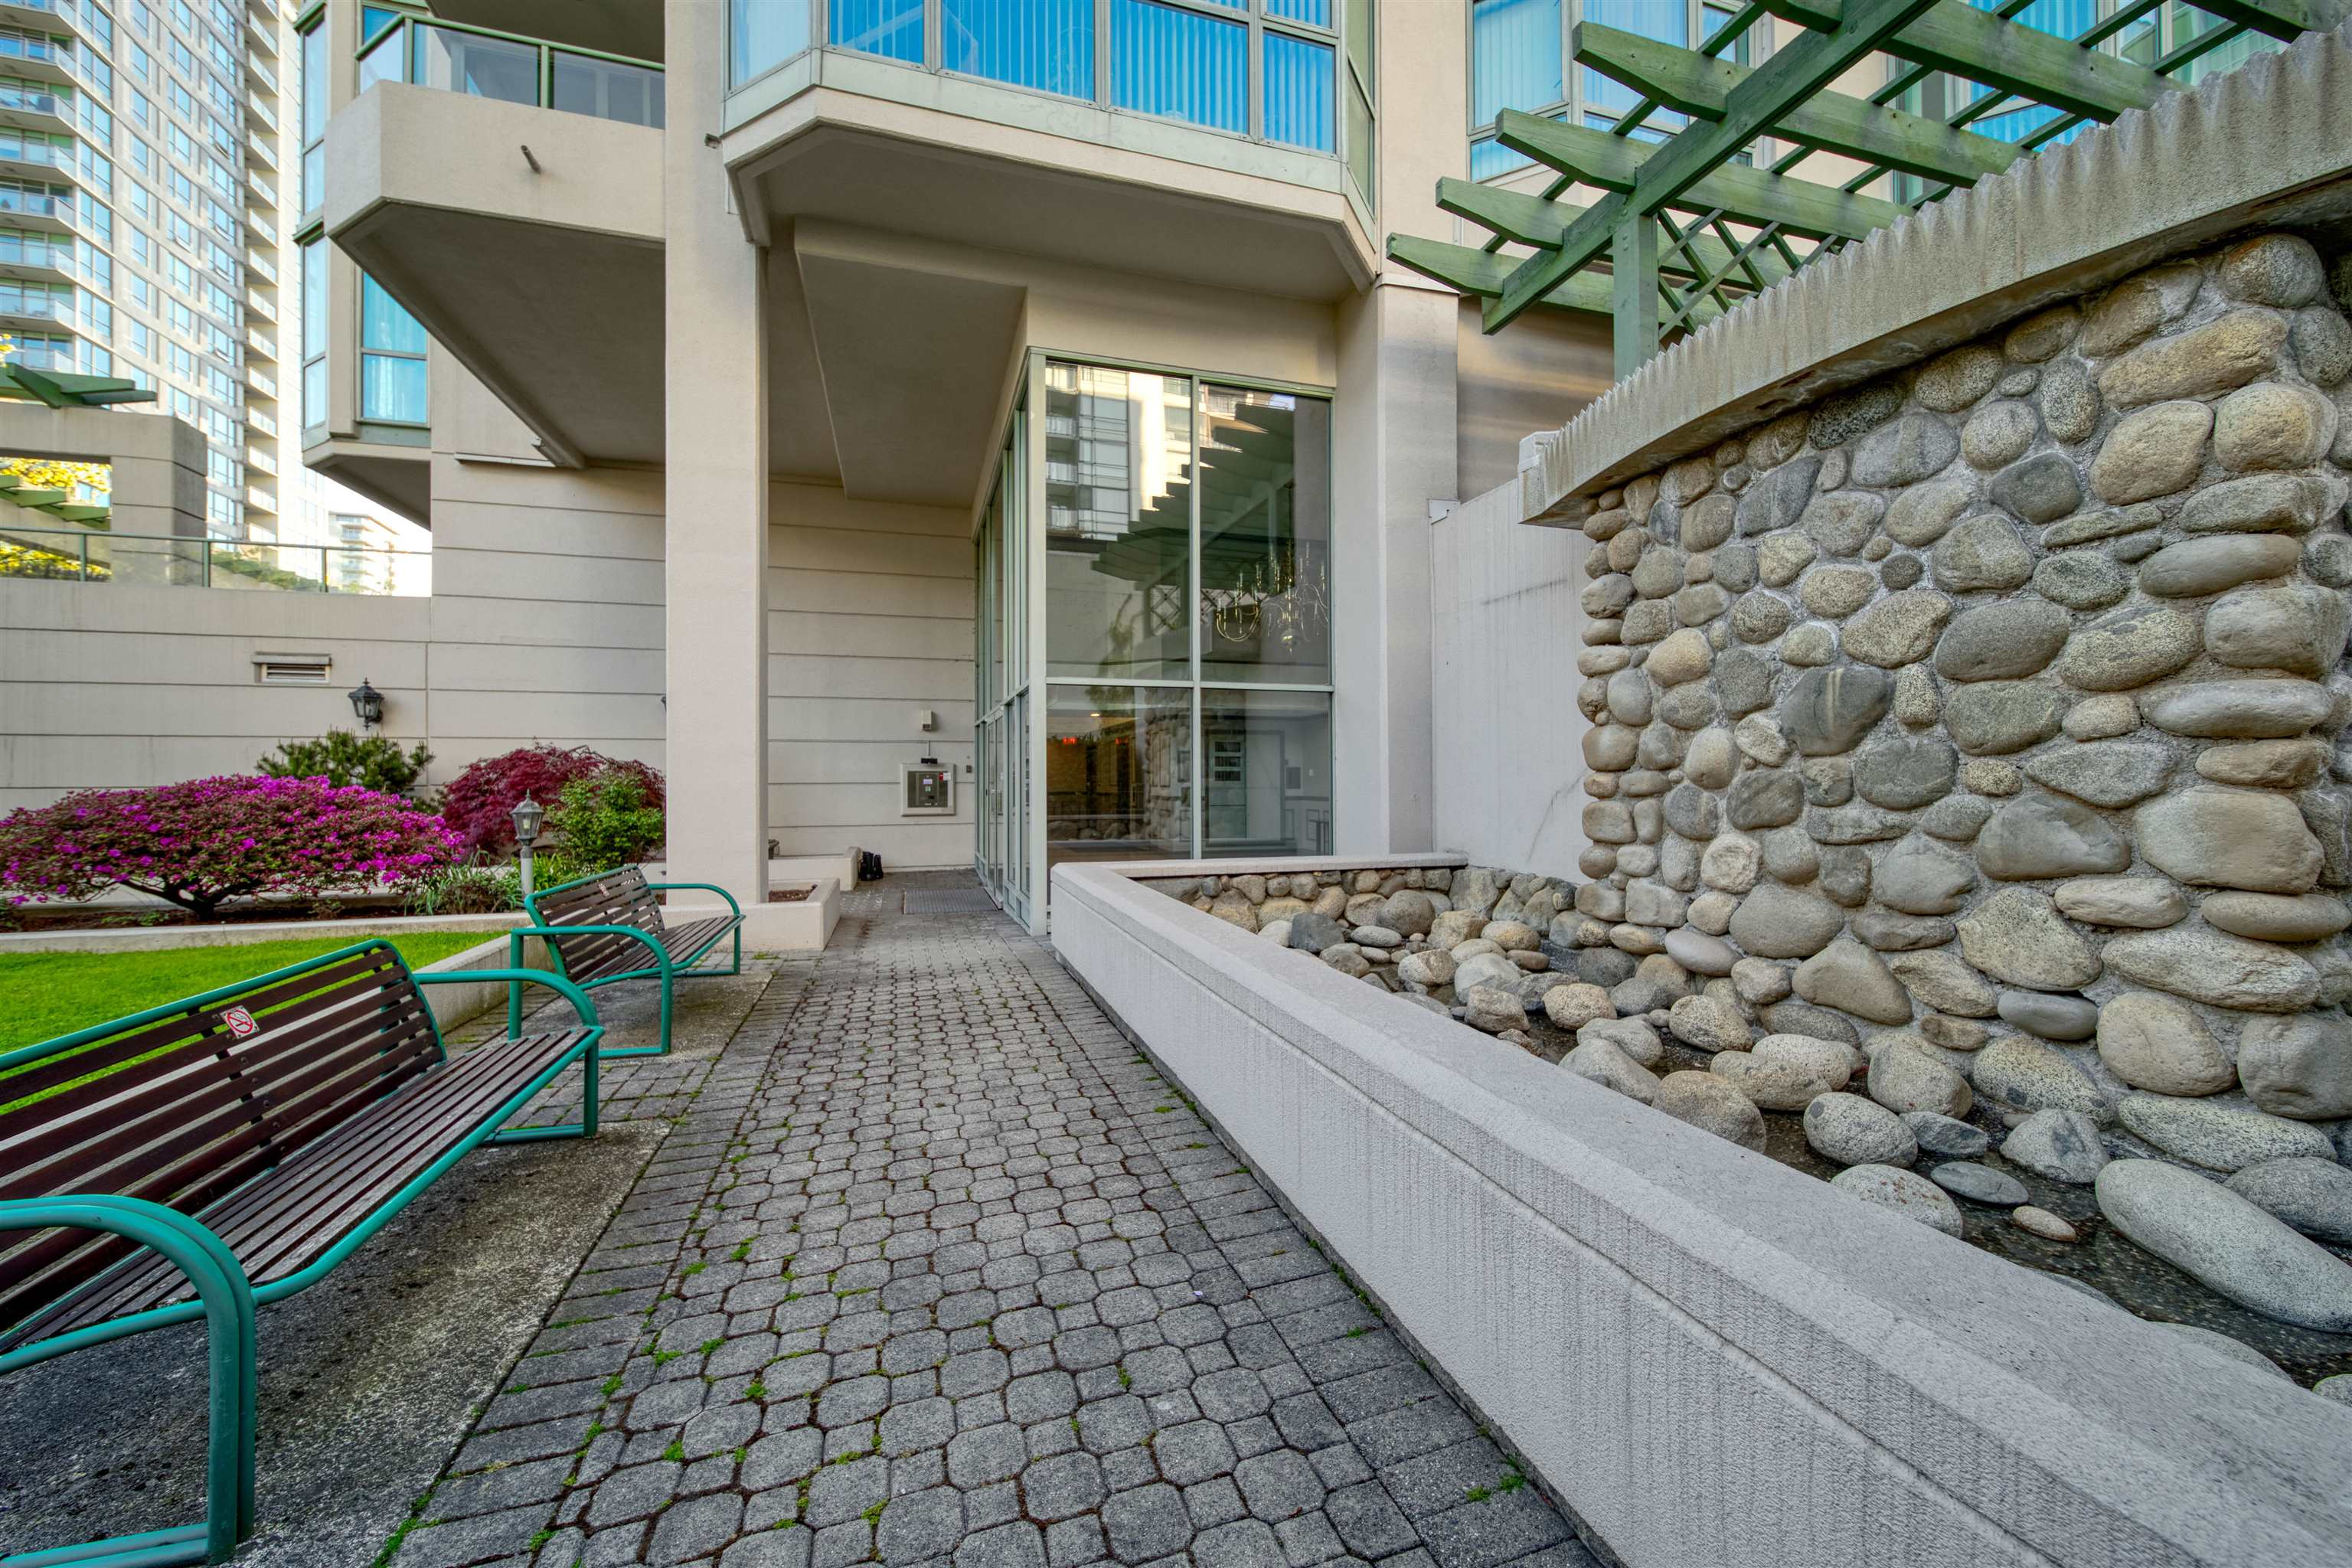 303 140 E 14TH STREET - Central Lonsdale Apartment/Condo for sale, 1 Bedroom (R2618094) - #2